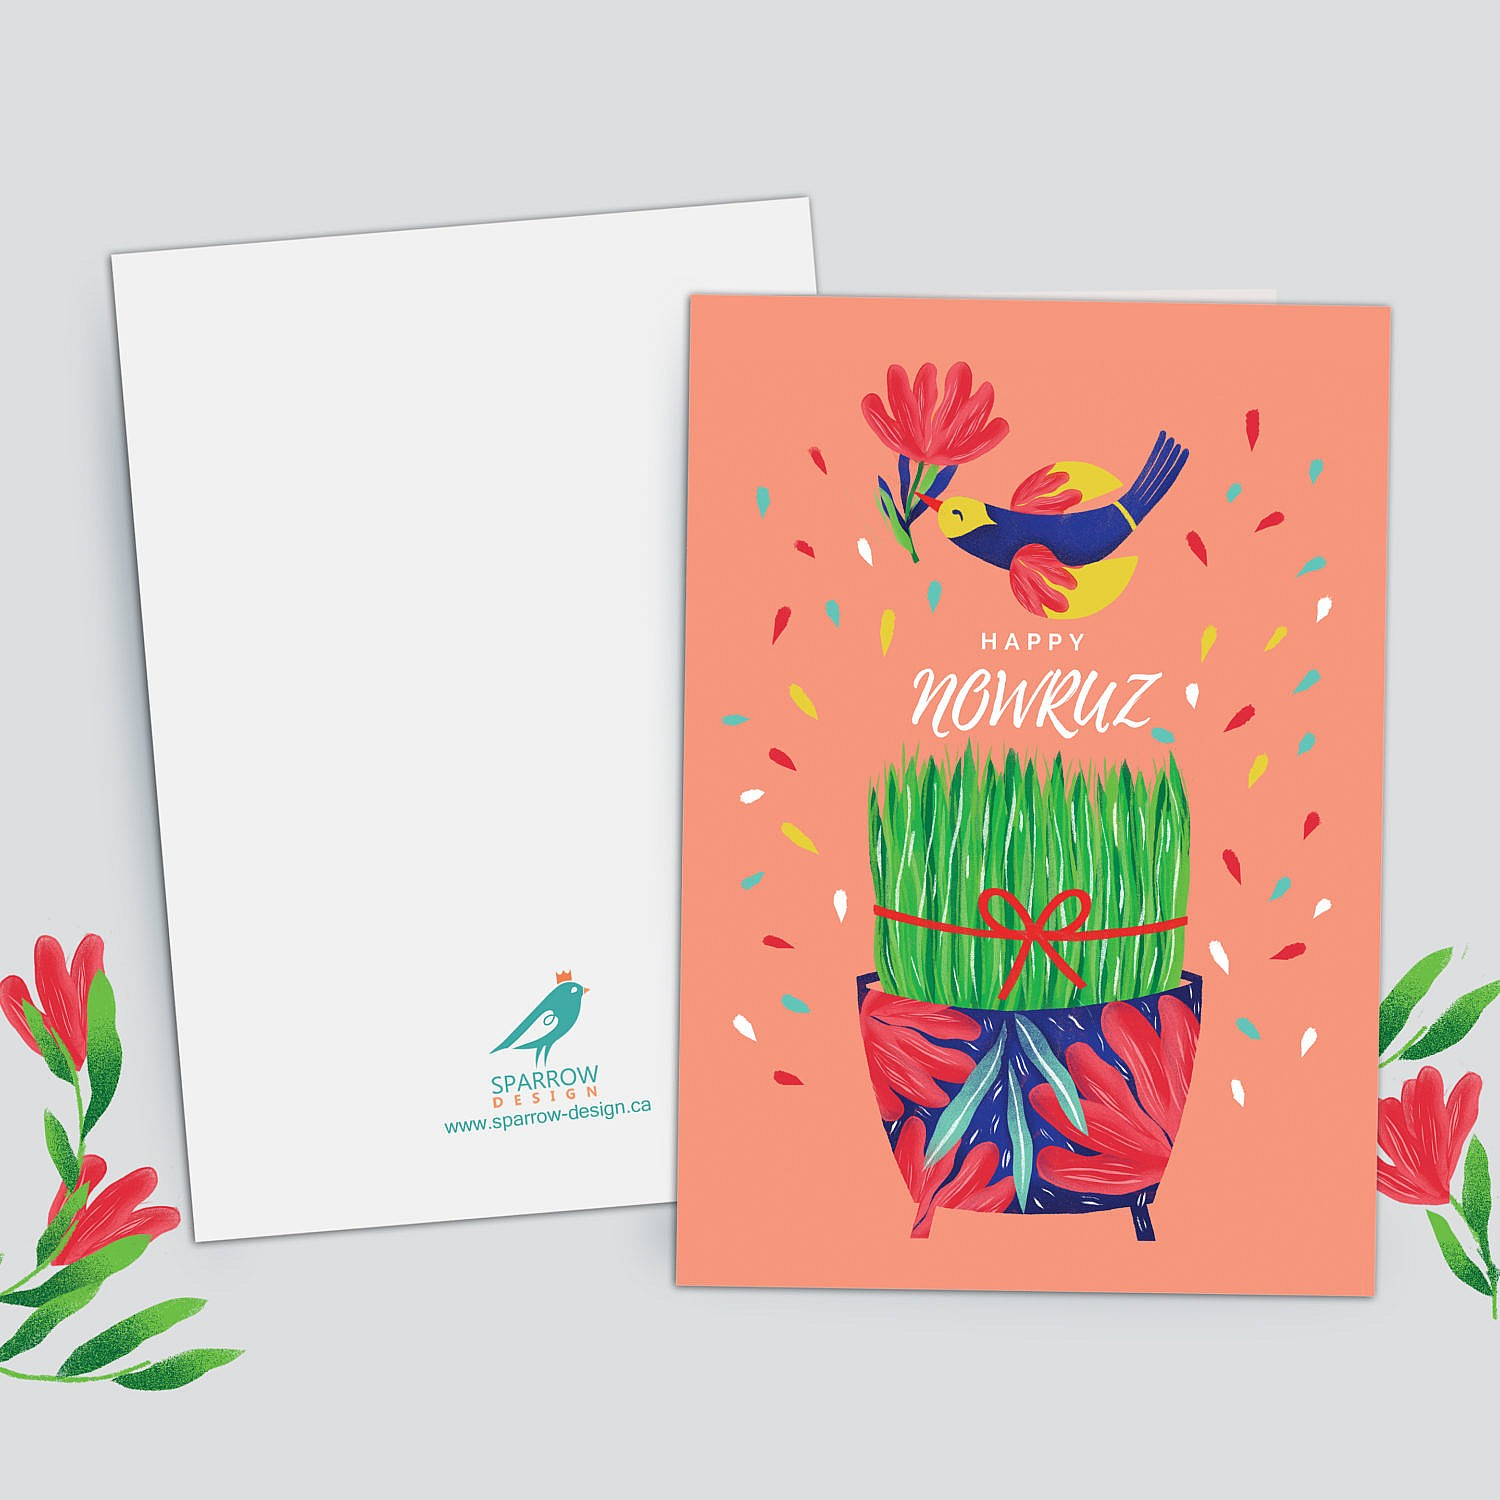 A greeting card for Nowruz 1400. Showing a bowl of (sabze) green herb and a bird flying above it. Color are light pink, yellow, green, red, and blue. Altogether, showing the spring theme.